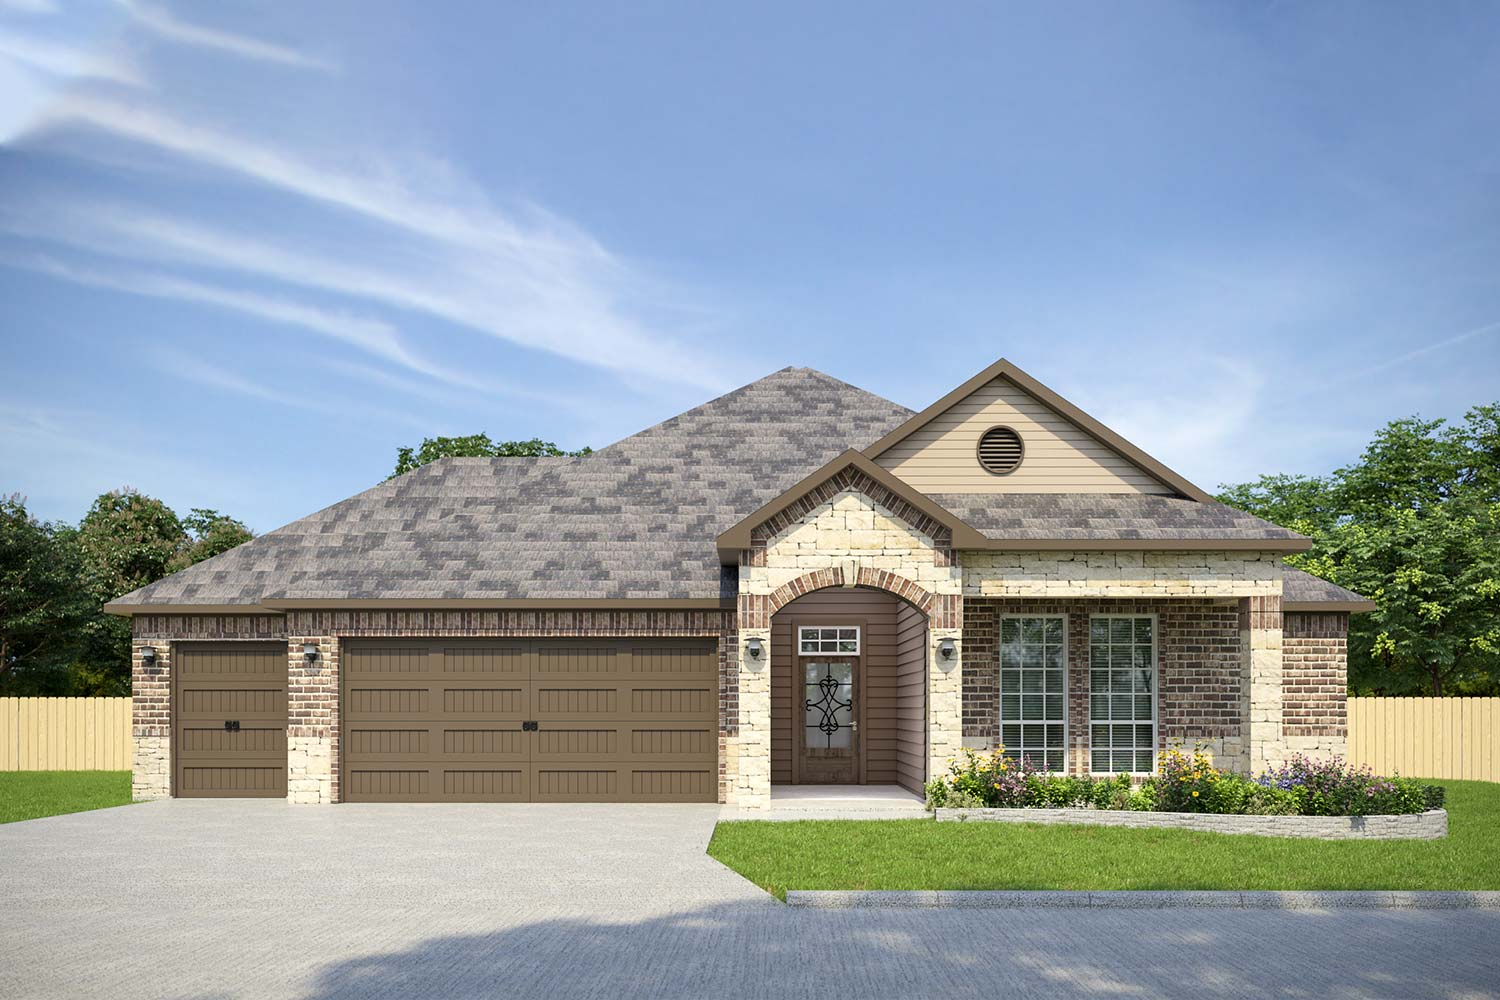 New Homes for Sale in Belton, TX | 3309 Trinity Dr